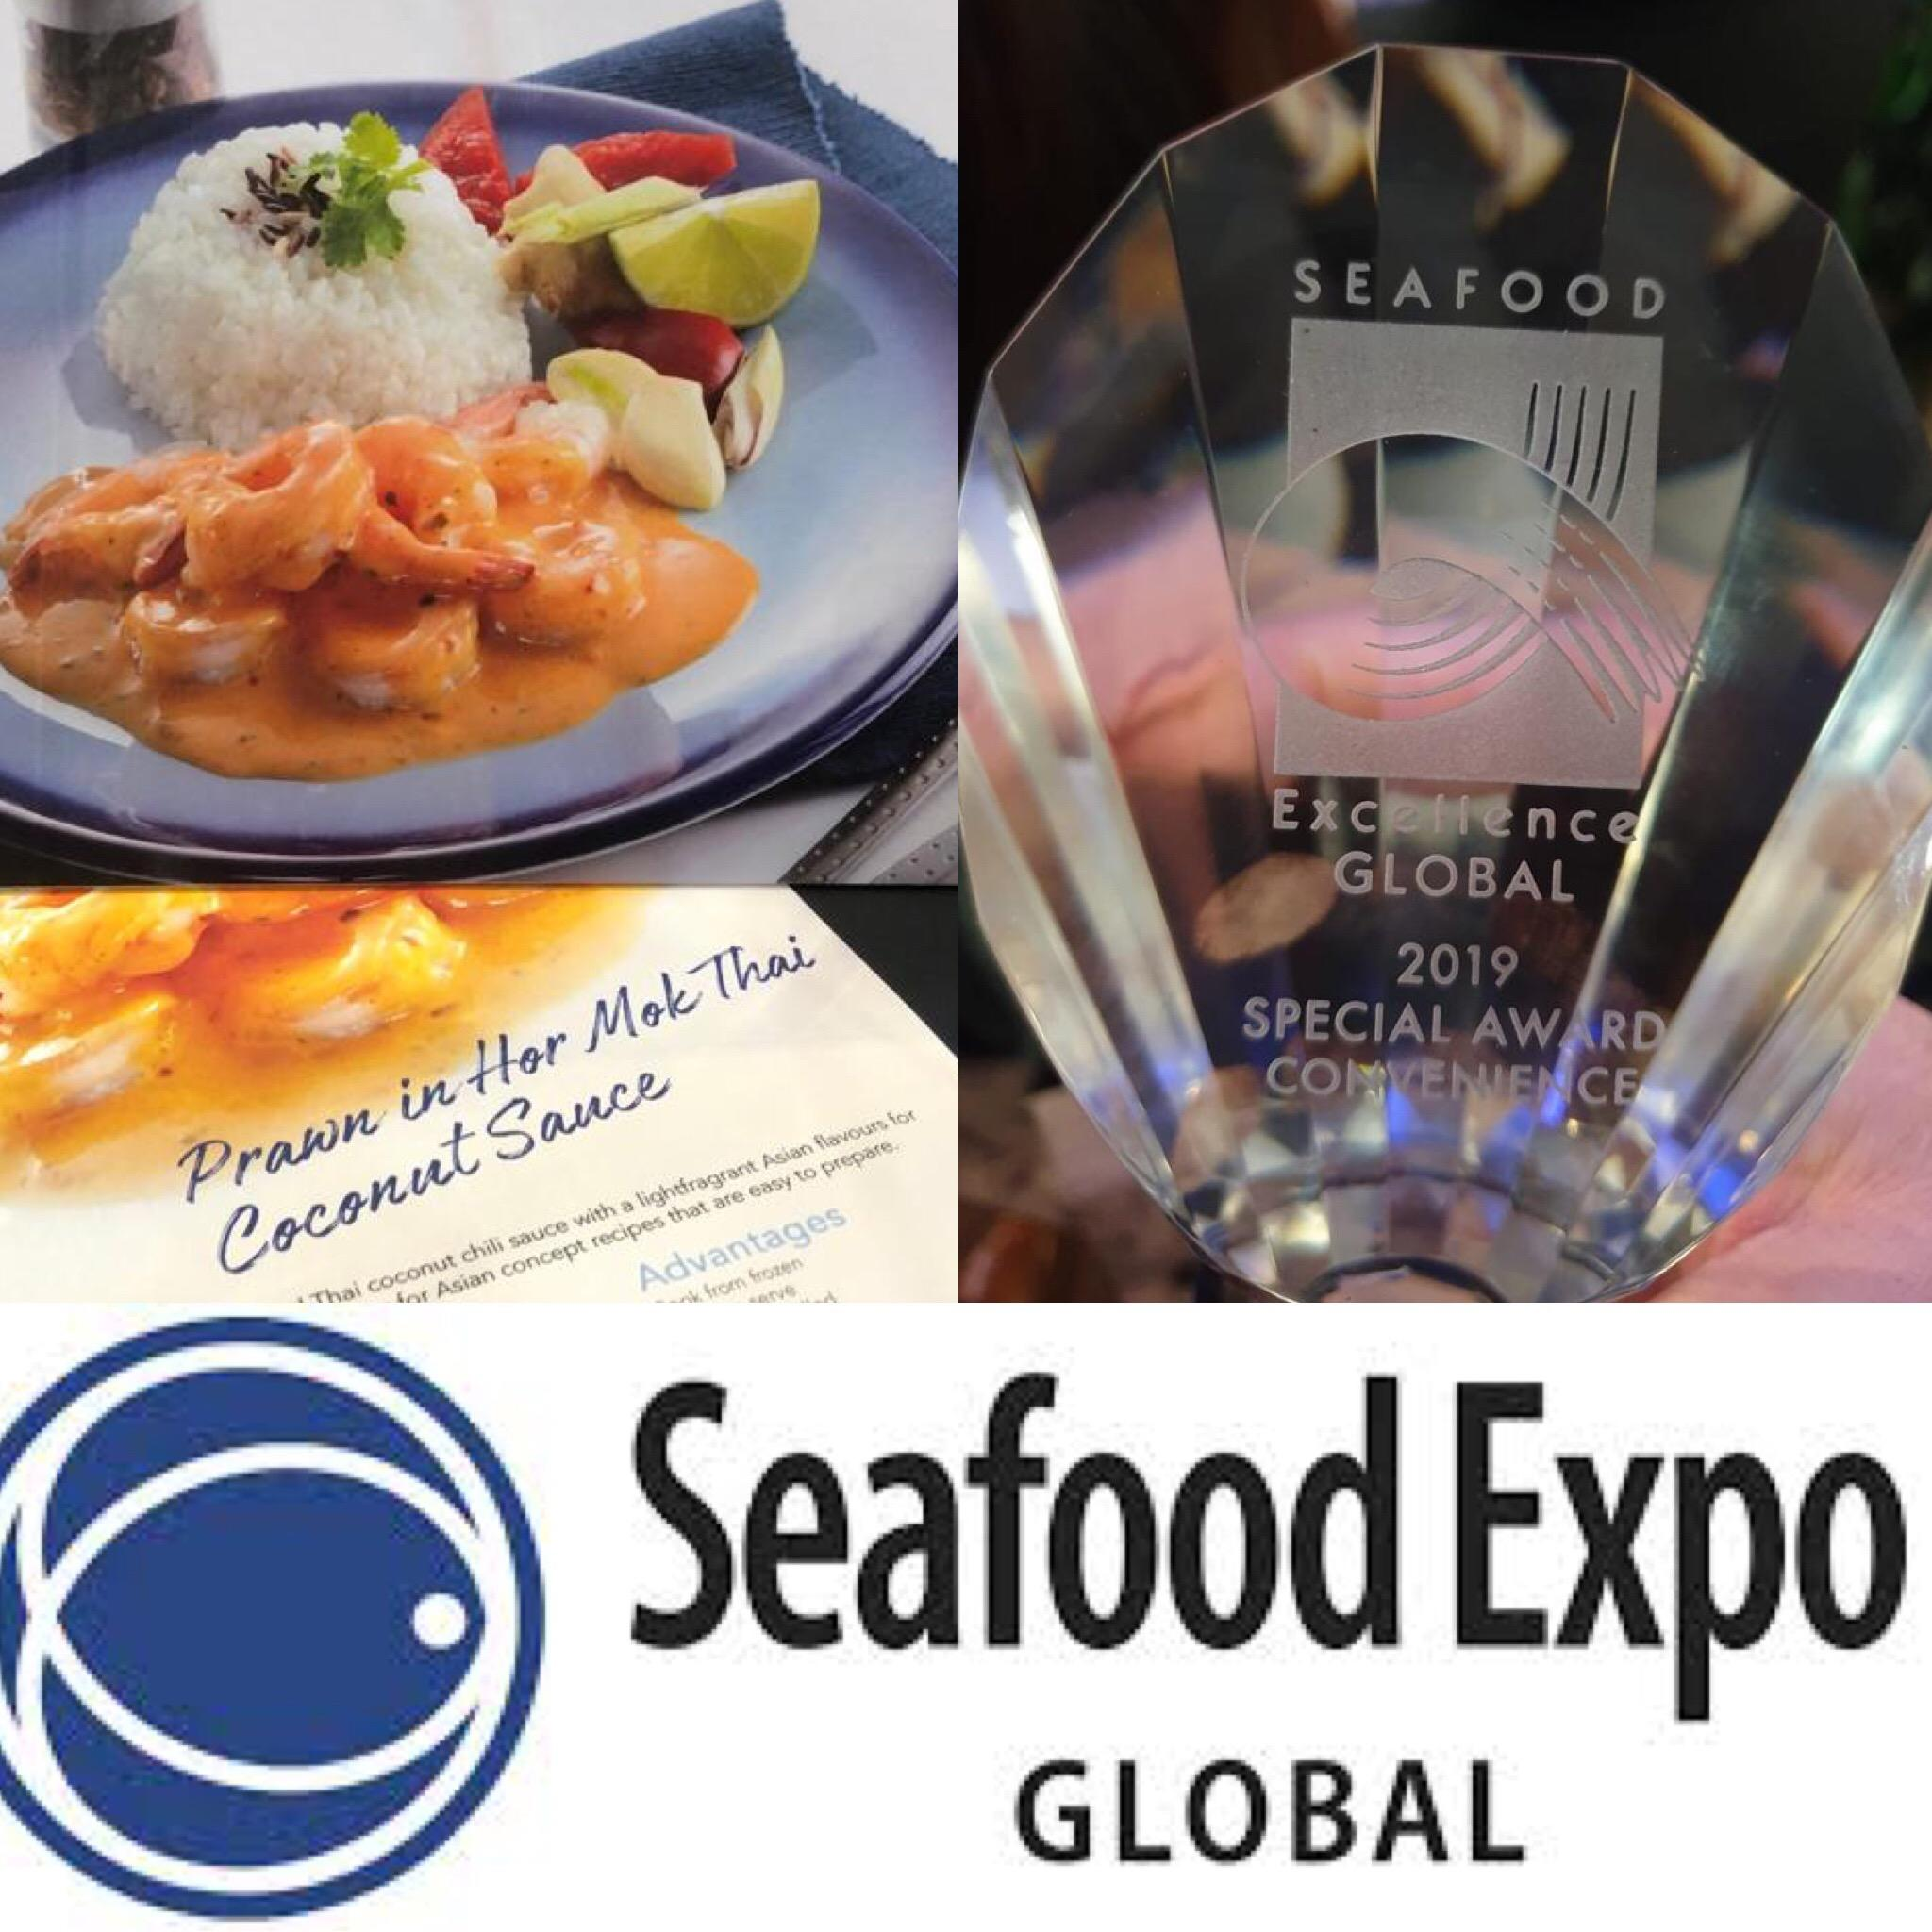 Pacific West award win at The Seafood Excellence Global Awards 2019